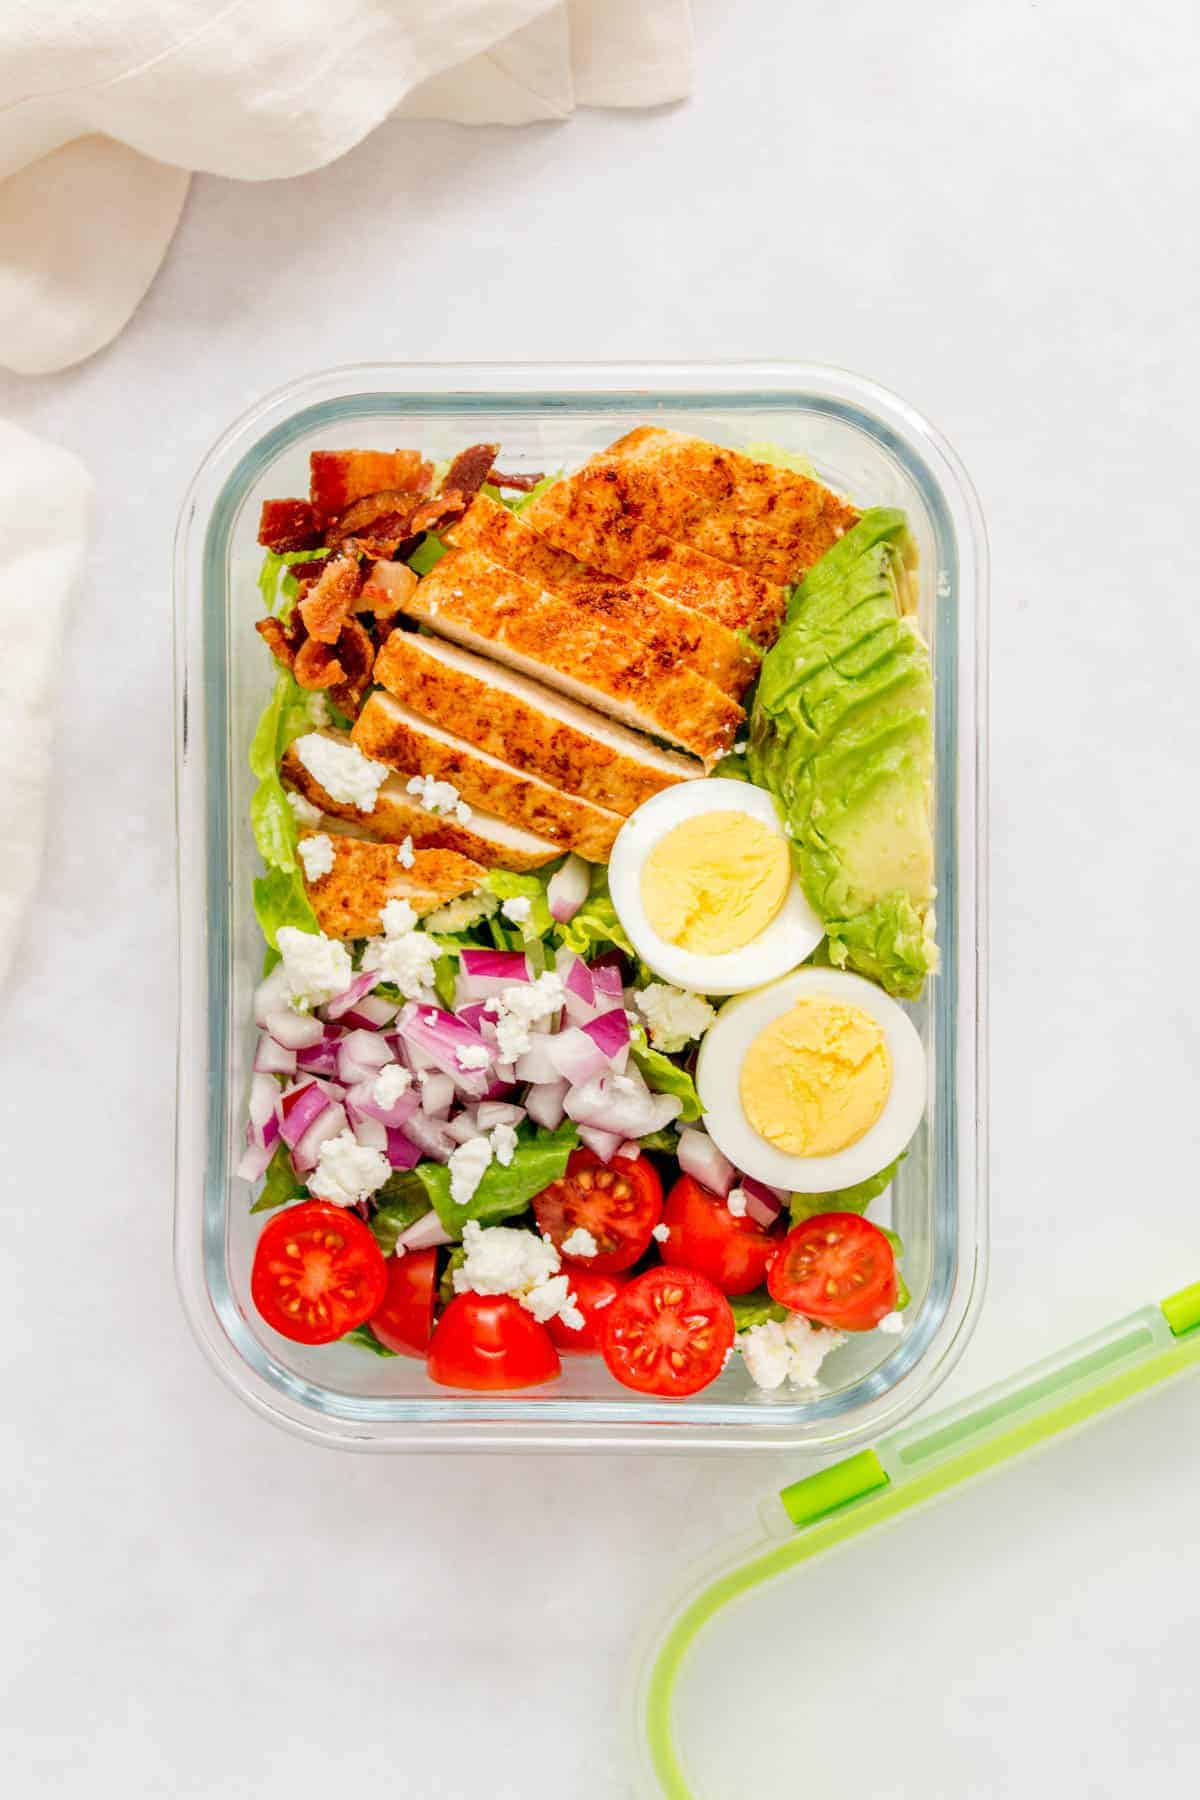 Packed with protein, this super easy healthy Chicken Cobb Salad doesn't take long to put together and is perfect if you're looking for a filling salad. It packs really well, making this cobb salad a perfect meal prep as well.